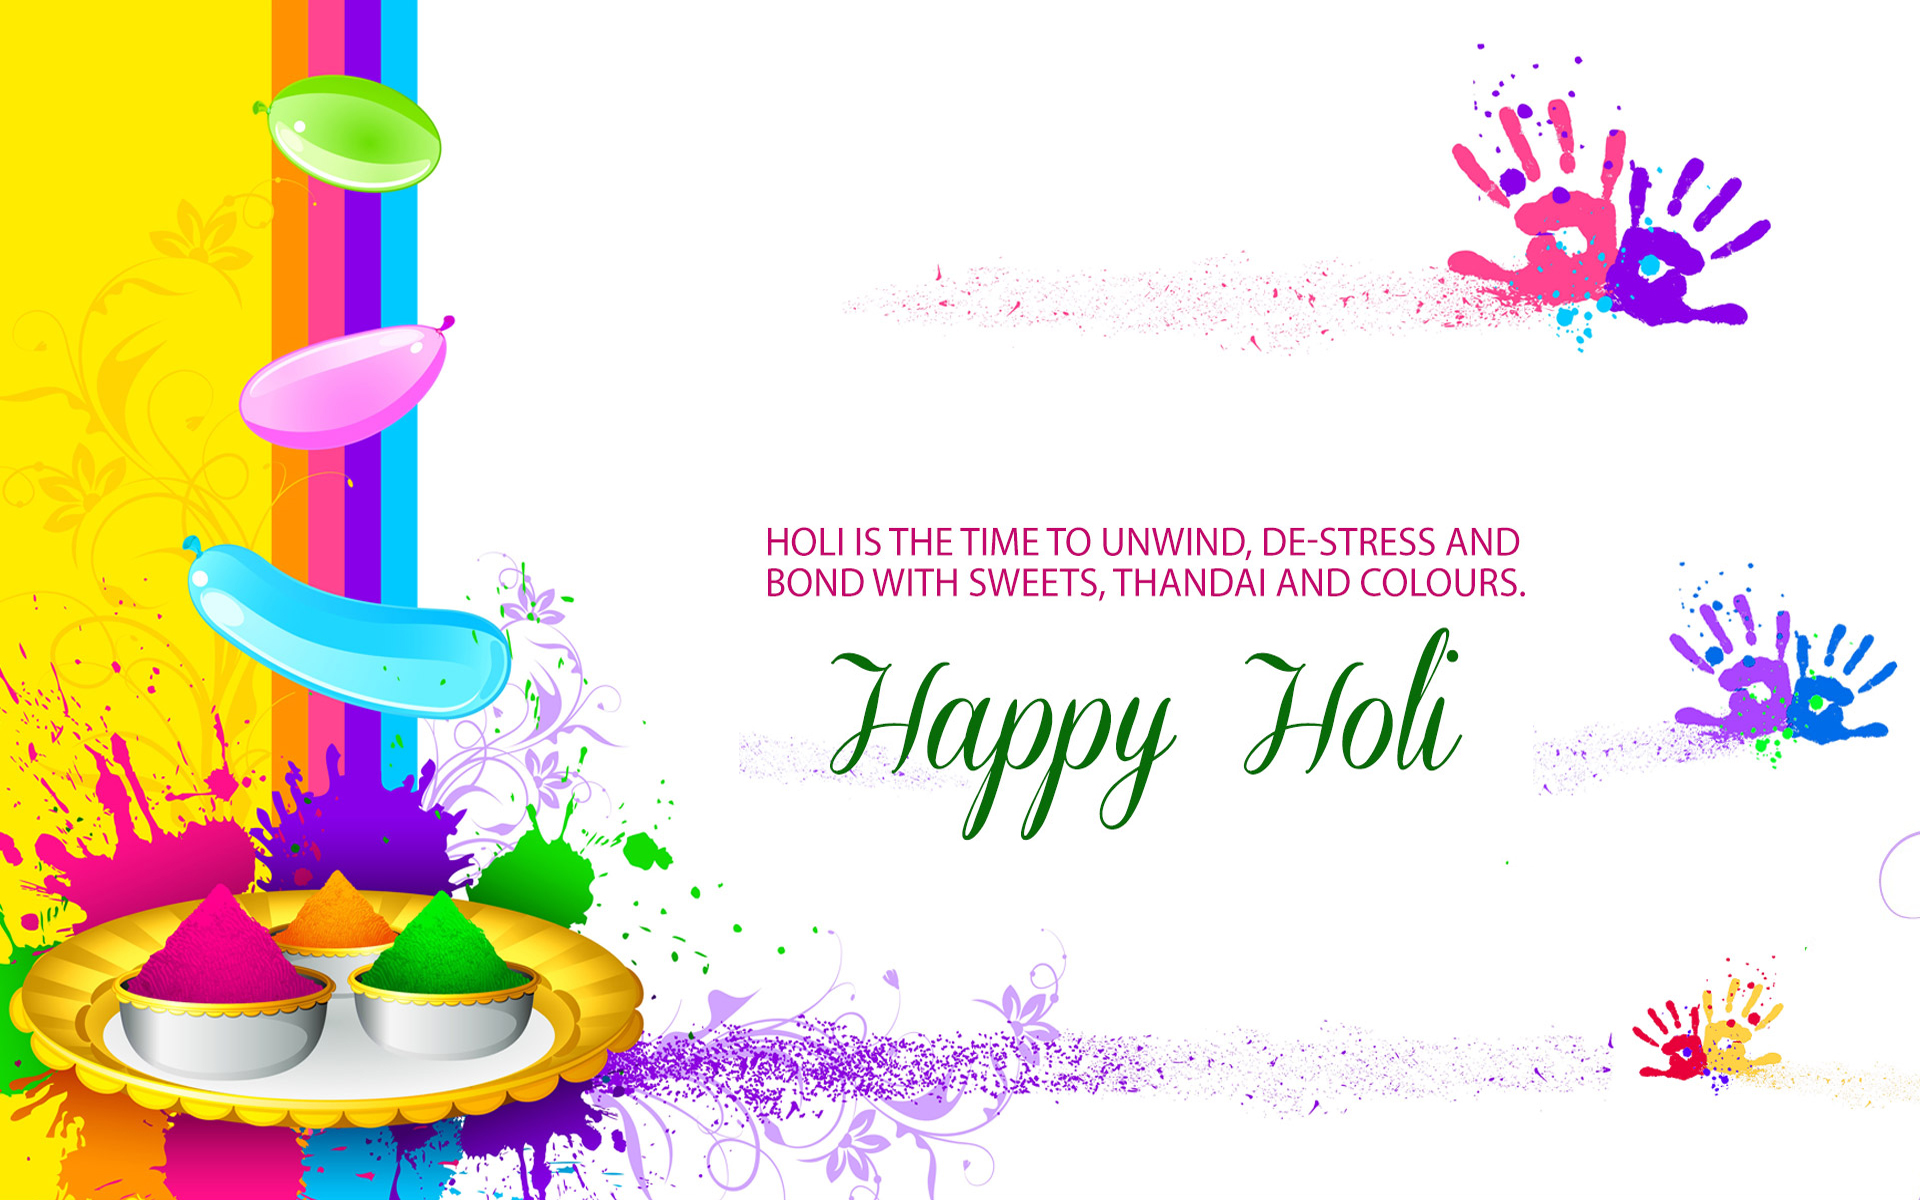 Happy choti holi 2018 wishes quotes sms messages whatsapp status 841 kristyandbryce Images